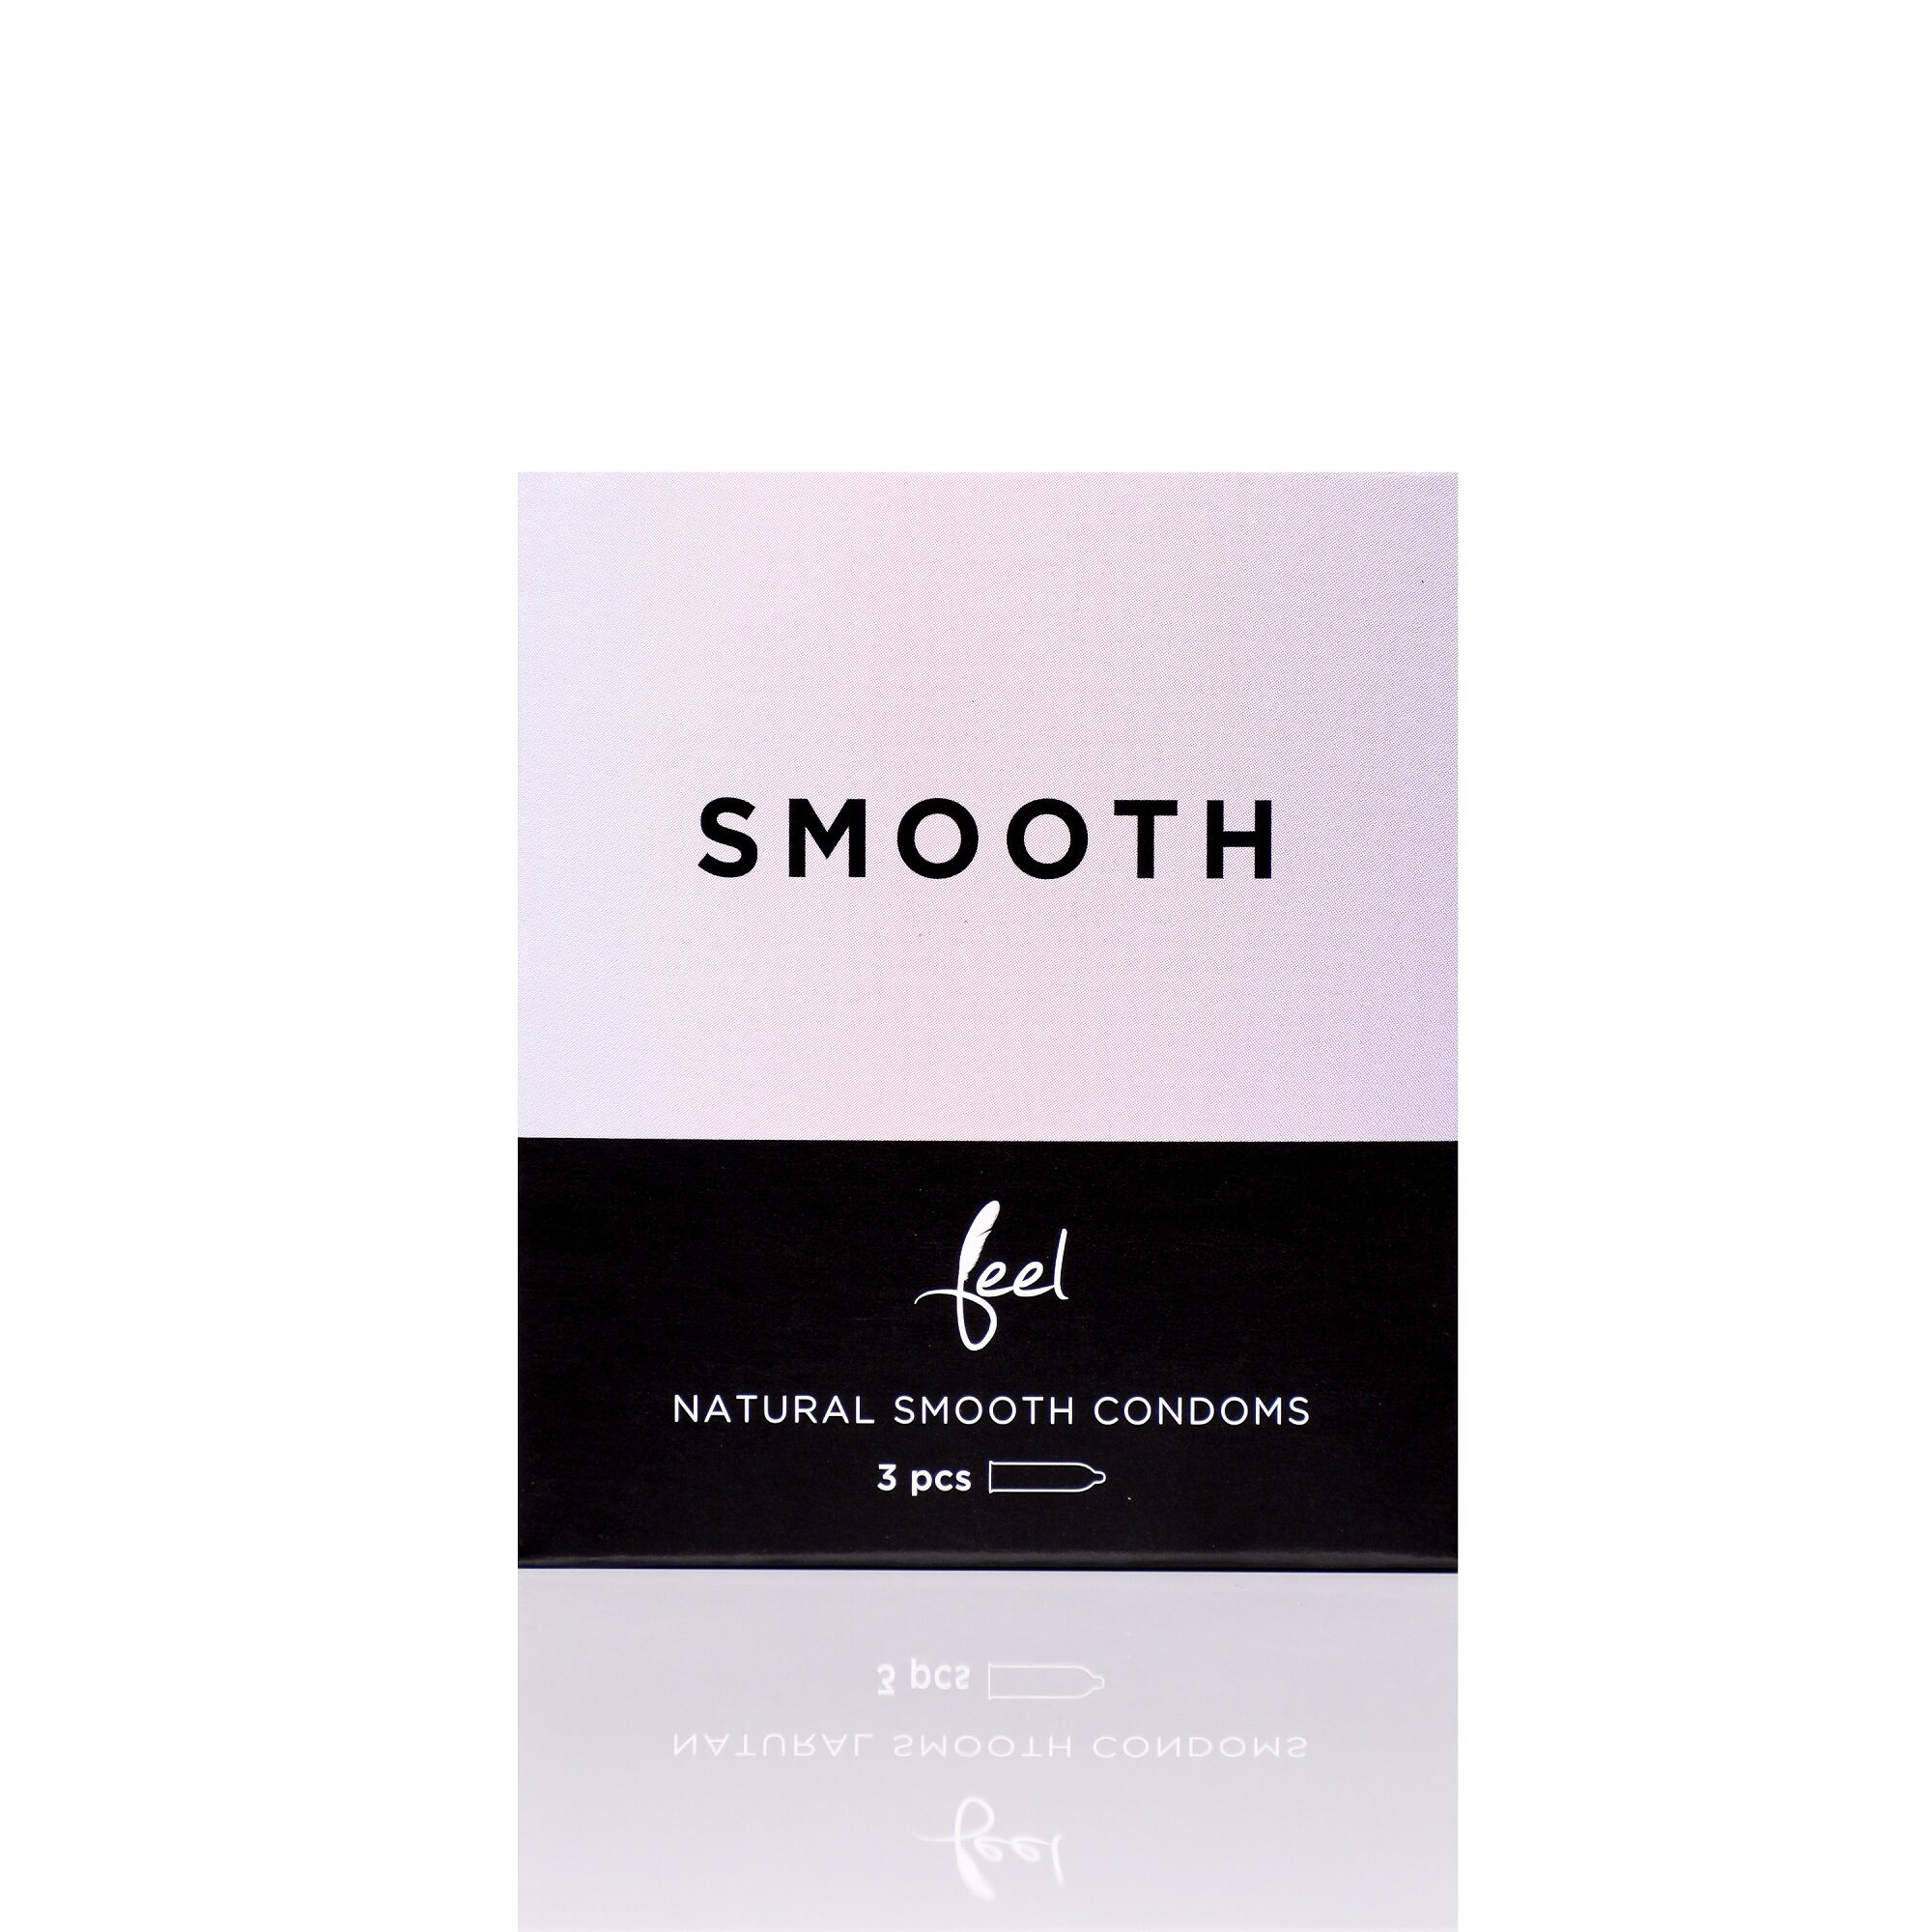 Nulatex Feel Smooth Natural & Seamless Condoms 3pcs